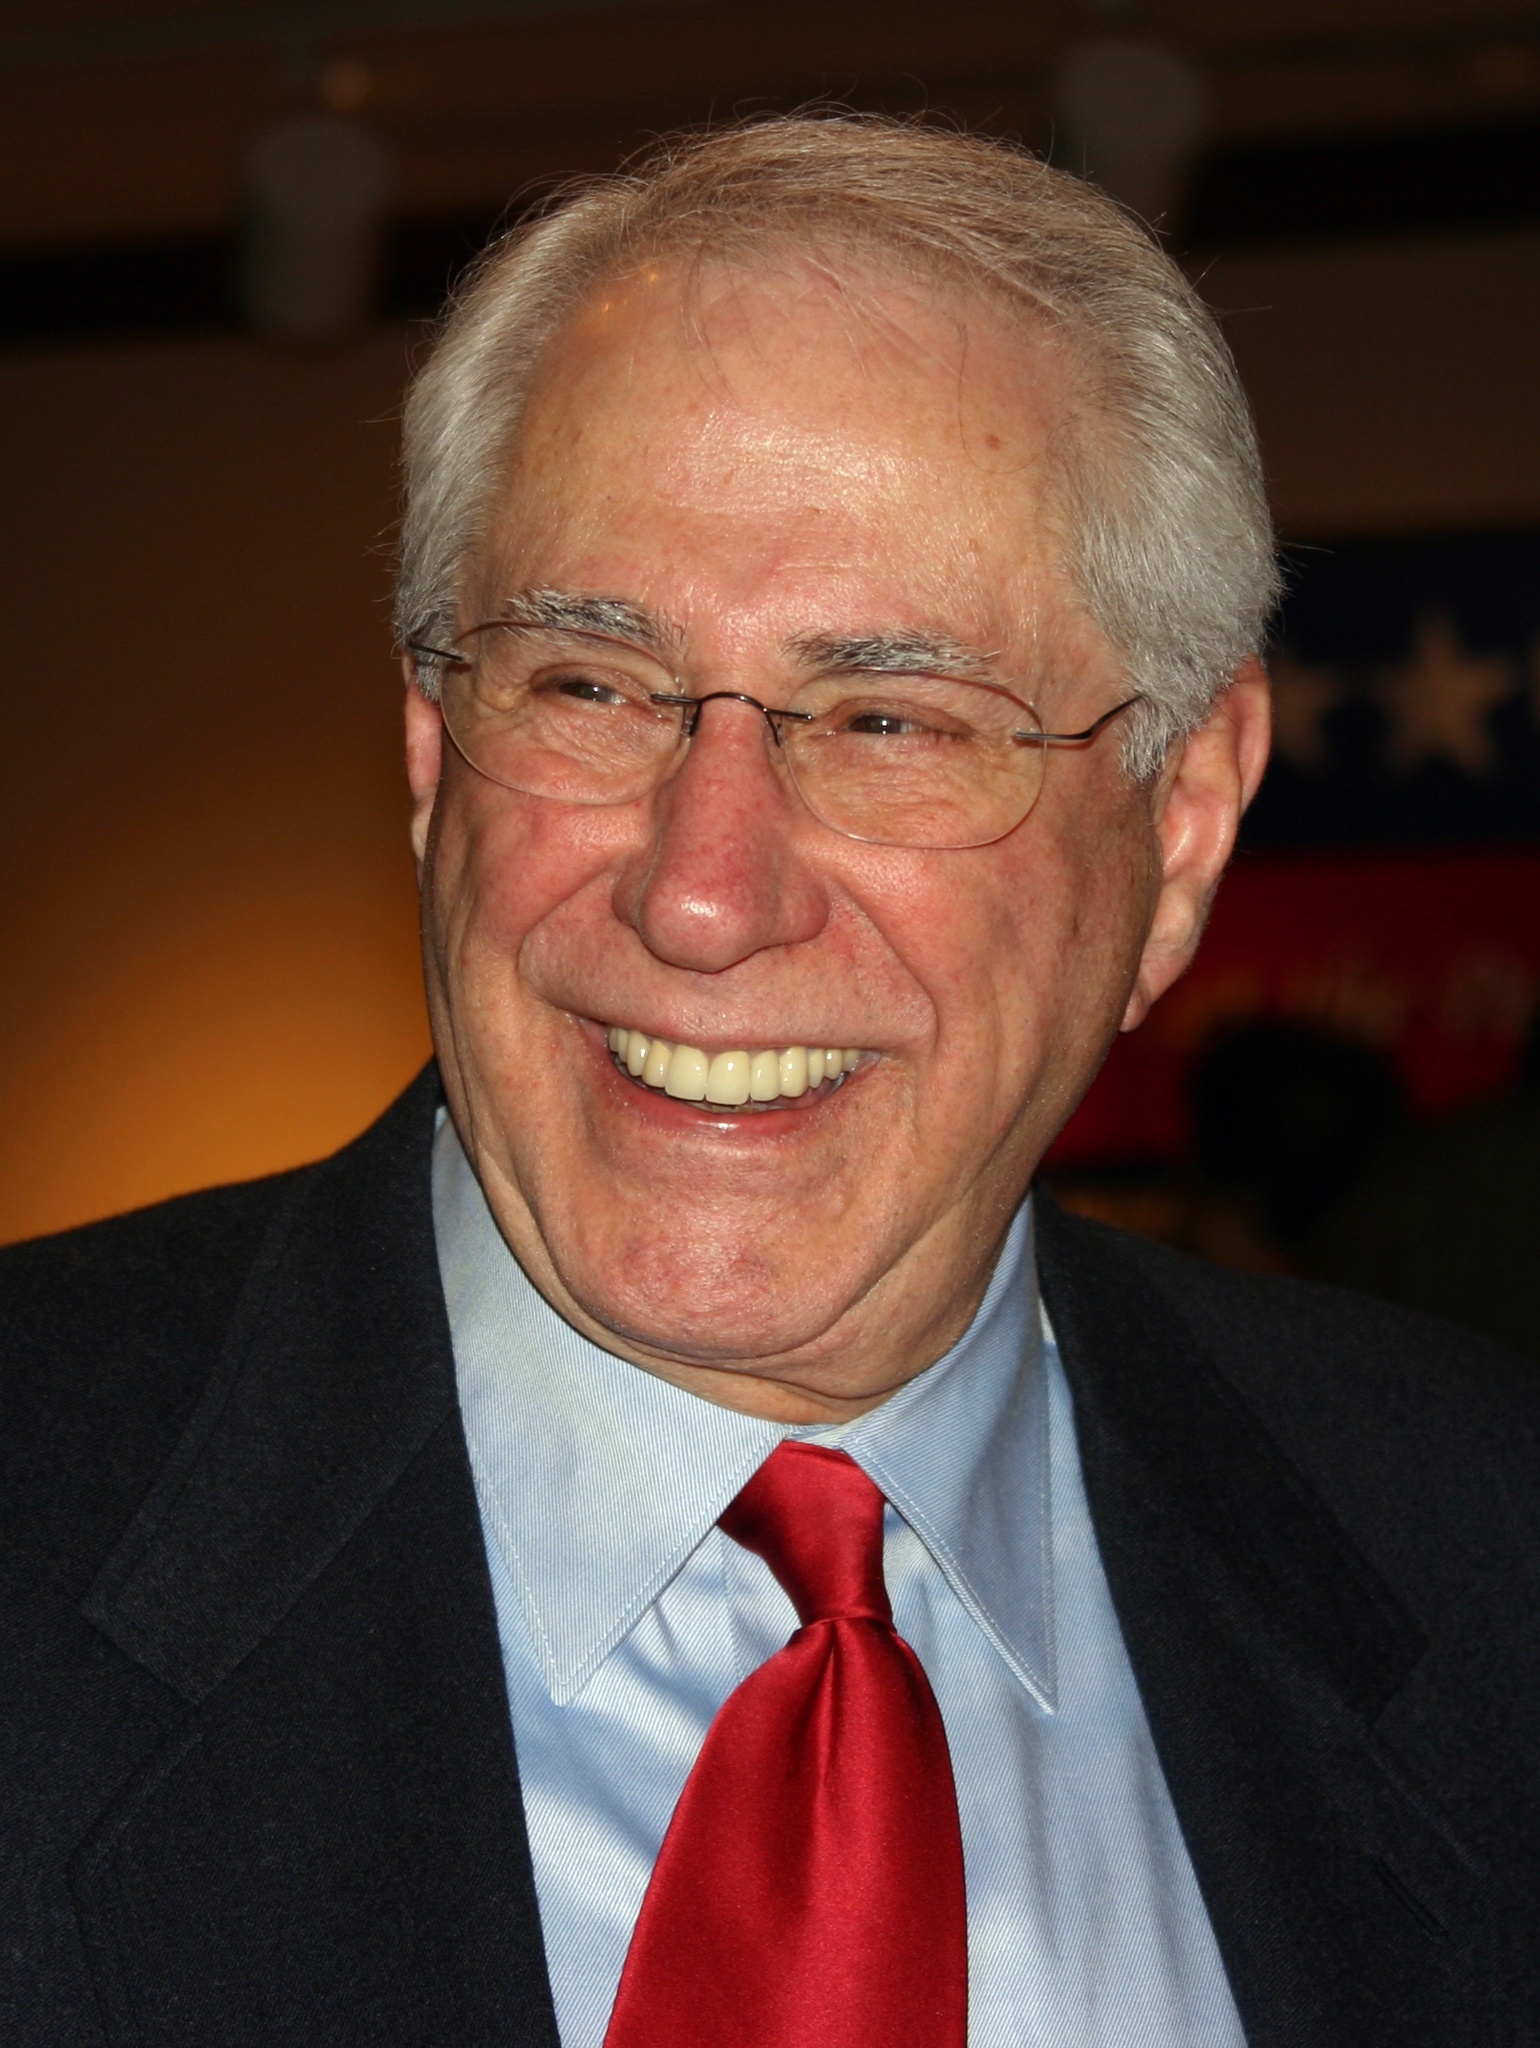 Mike Gravel website image (1540x2048) August 7th, 2008 by admin